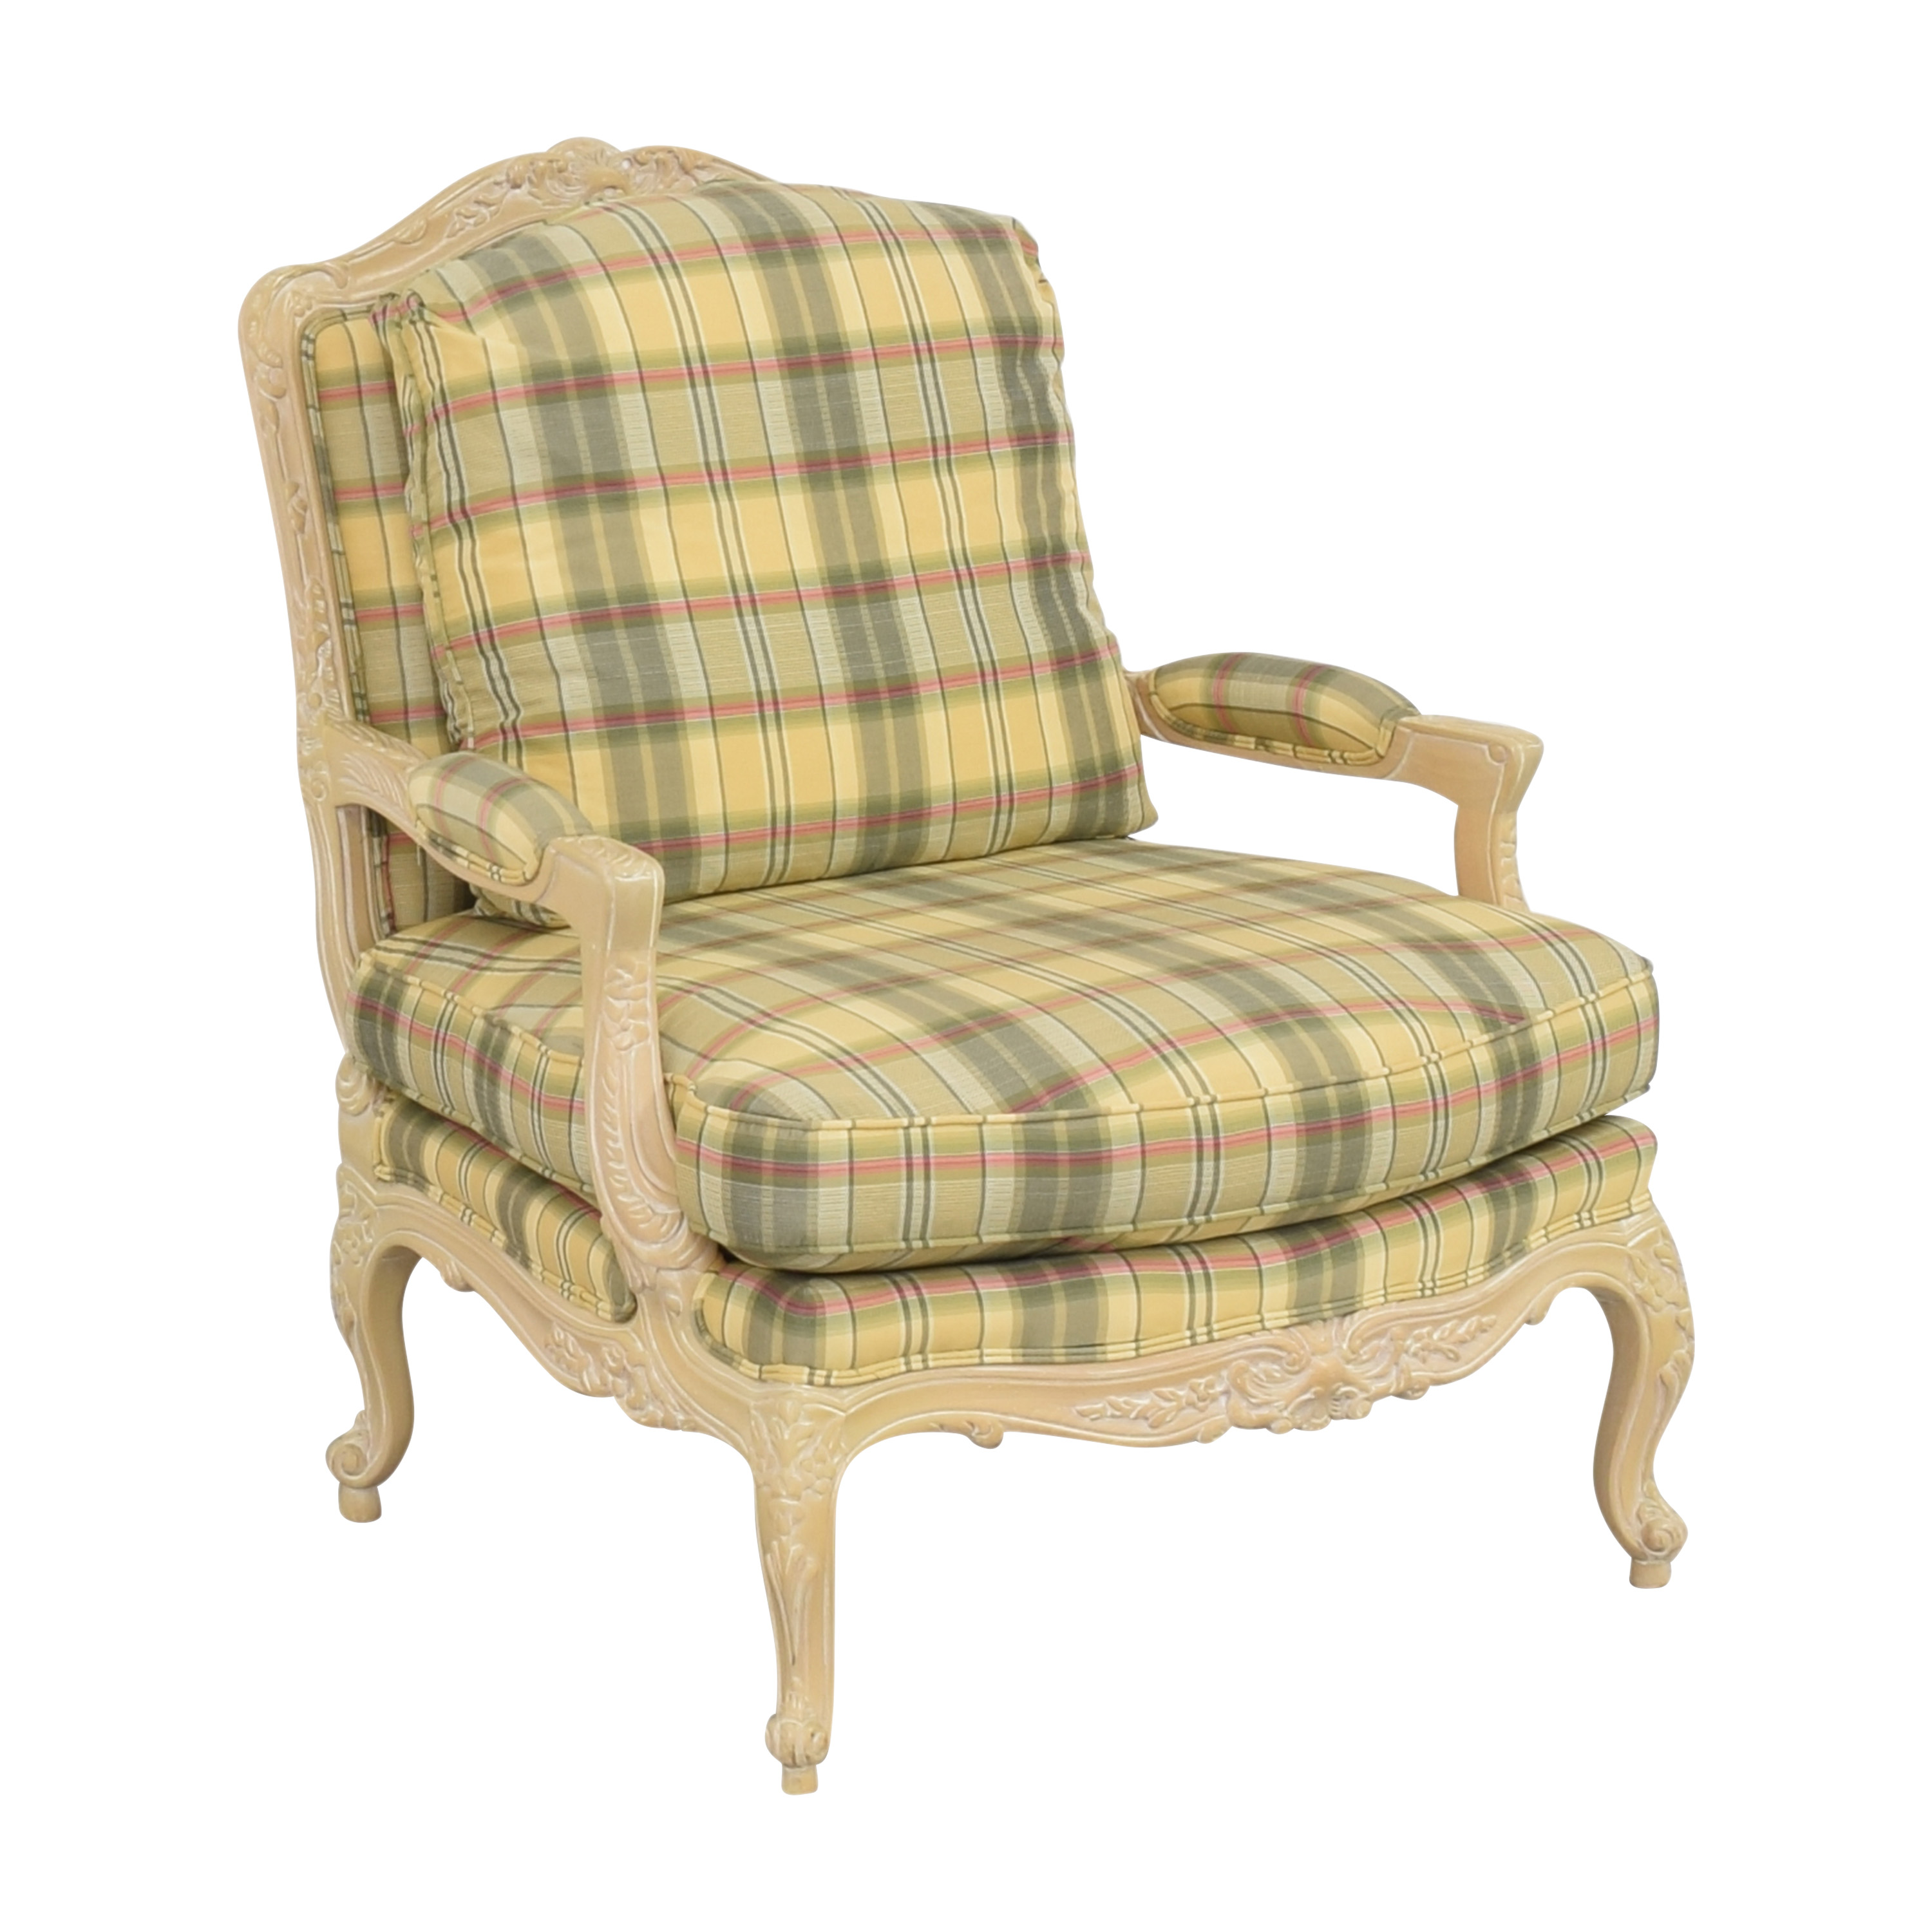 Sherrill Furniture Sherrill Furniture Plaid Carved Chair coupon